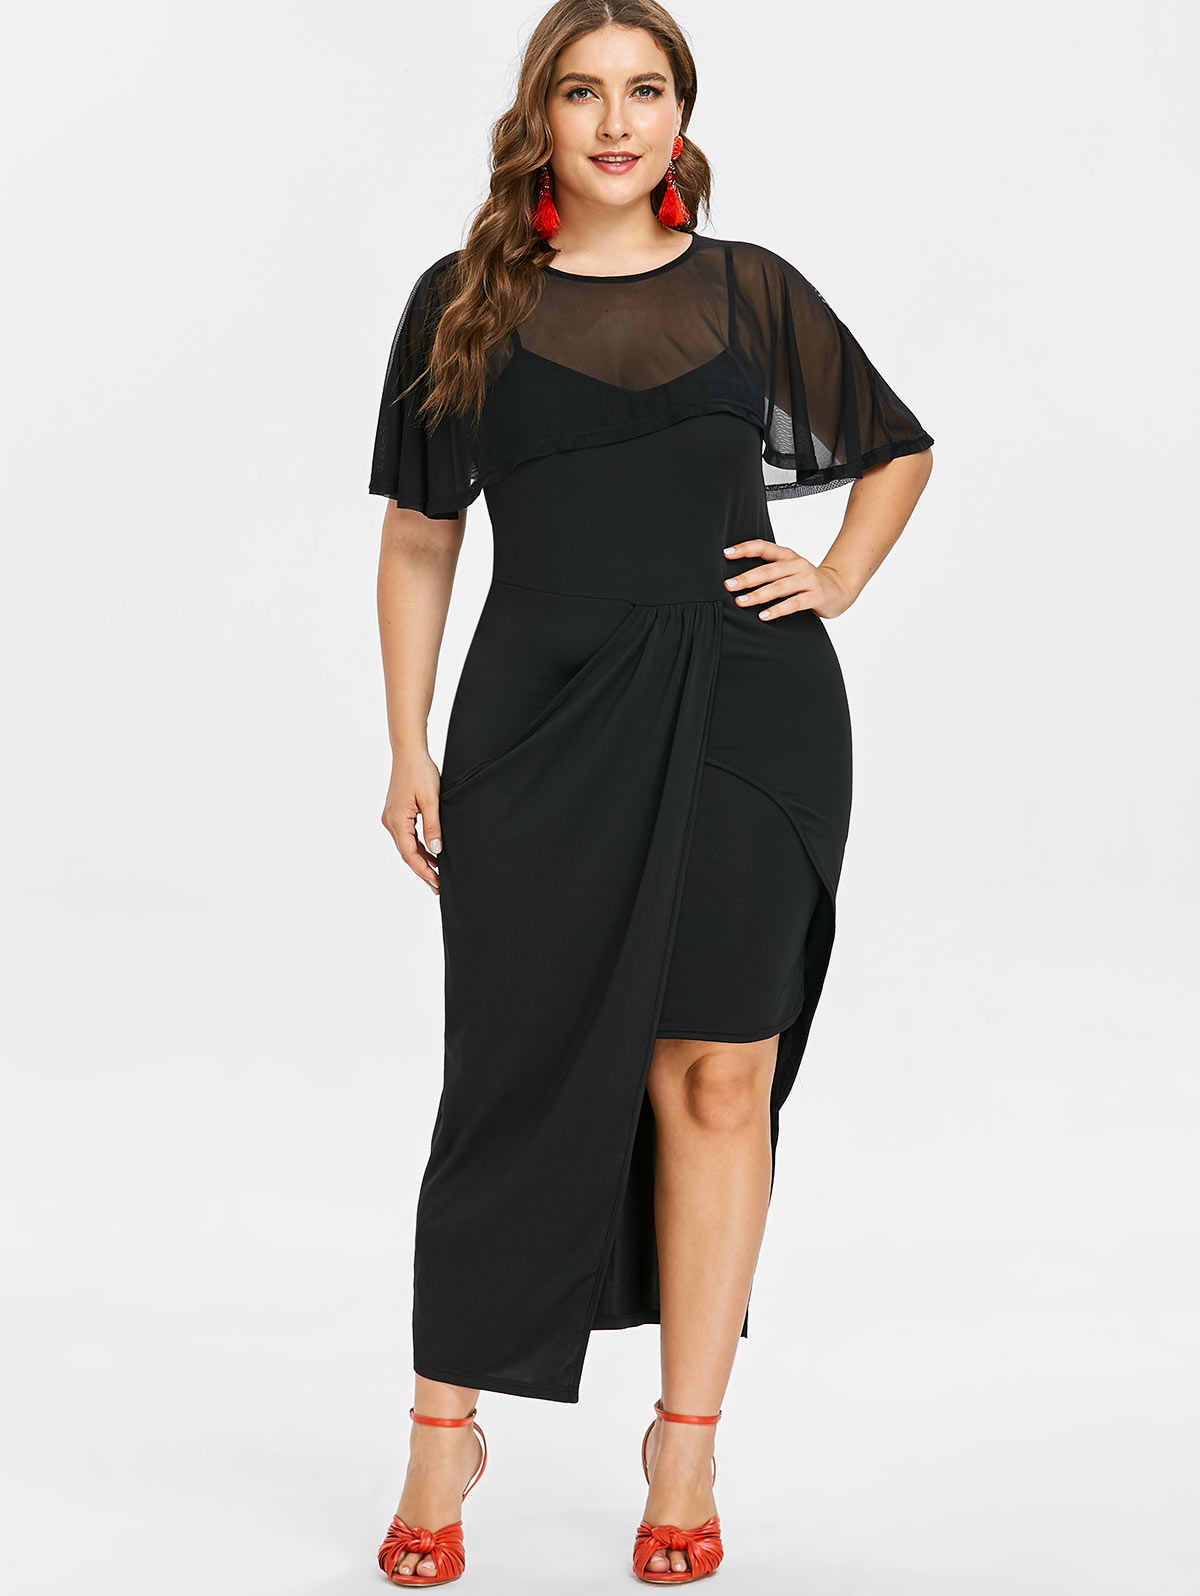 Kenancy Plus Size Flutter Sleeve Mesh Overlay Dress Female Autumn O Neck  Short Sleeve Ankle- cc2fa60bd046